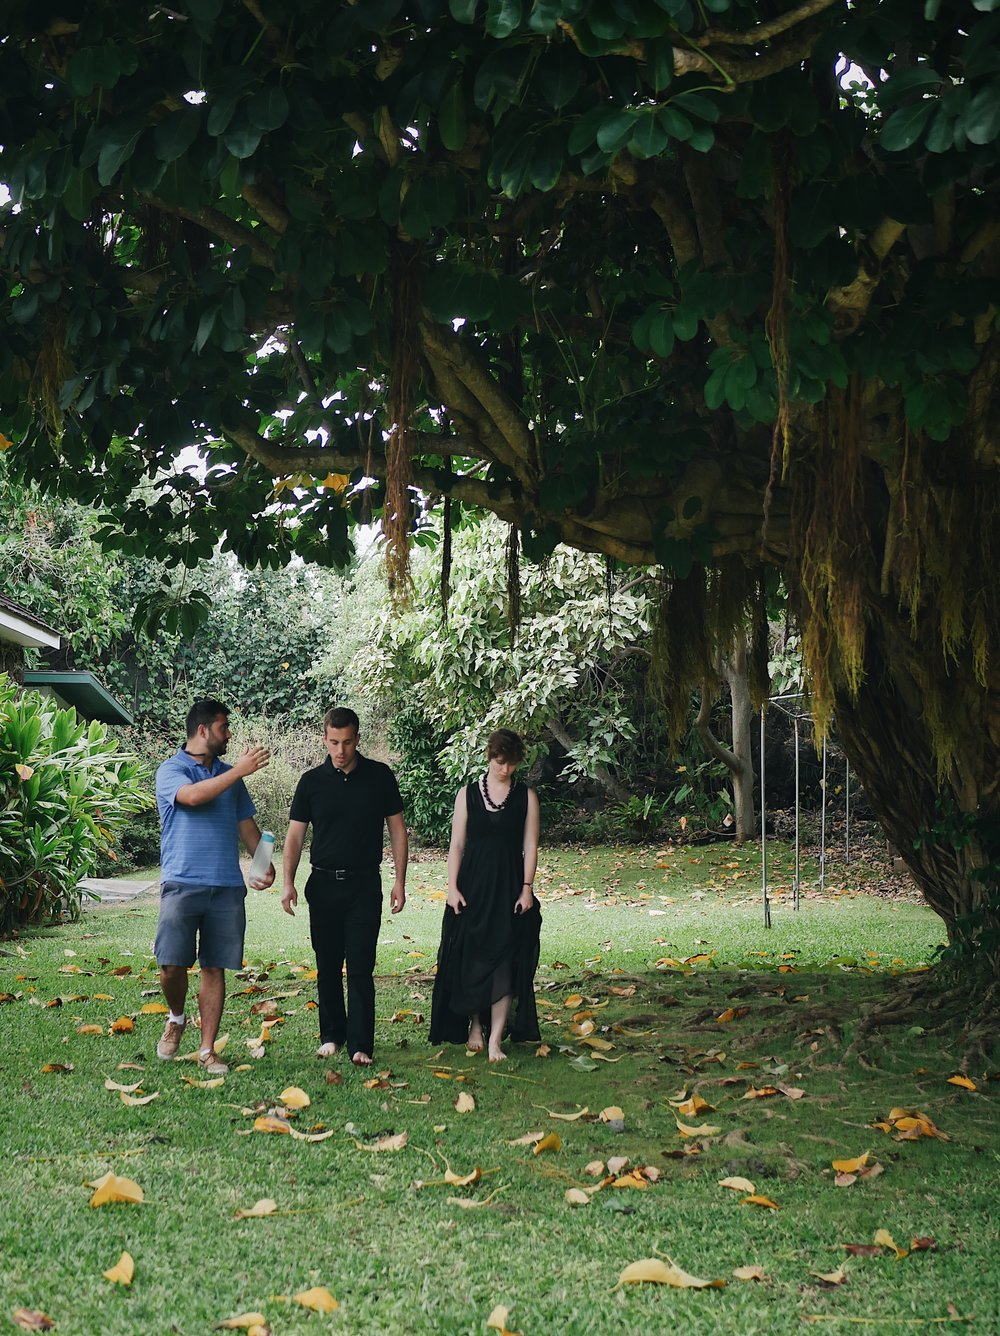 John Schafer, Steve Spinelli, and Brigid Lucey beneath a banyan tree beside Keawala'i Congregational Church